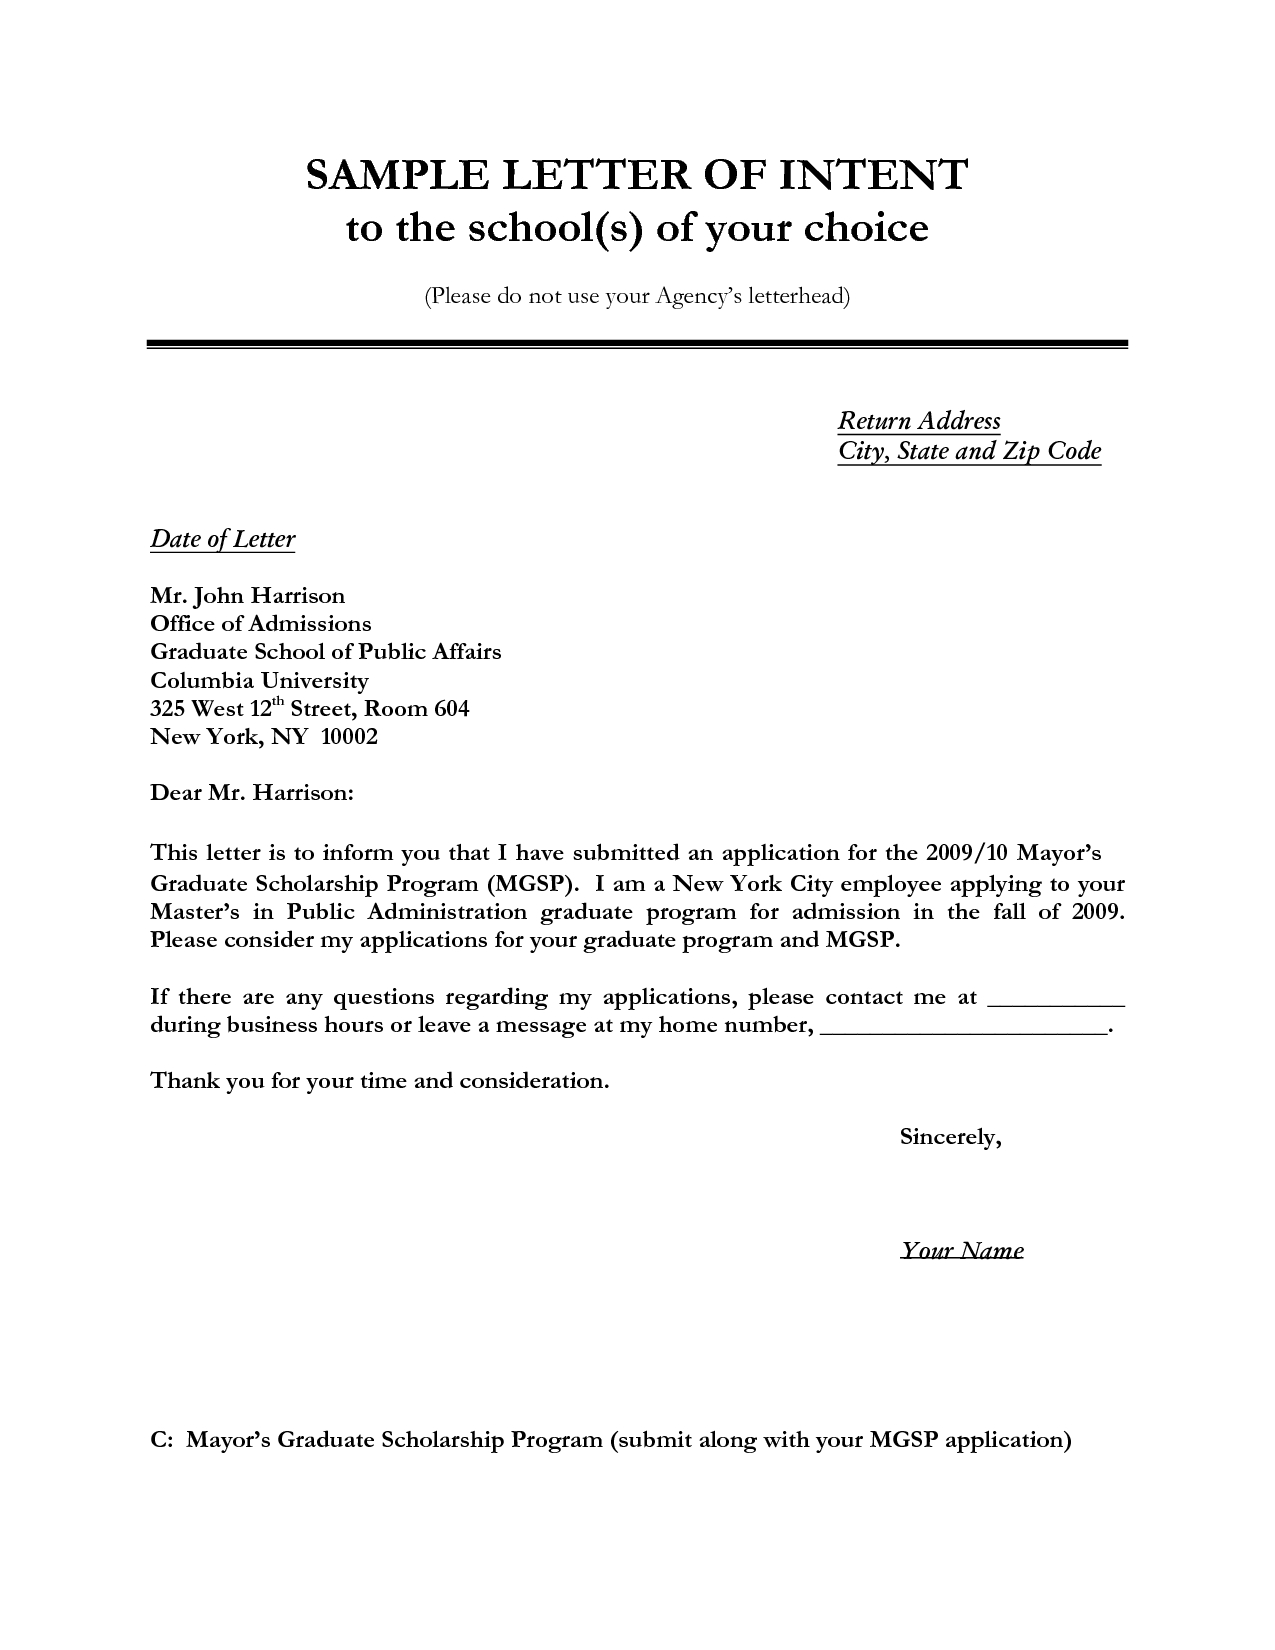 Public Record Removal Letter Template - Letter Of Intent Sample